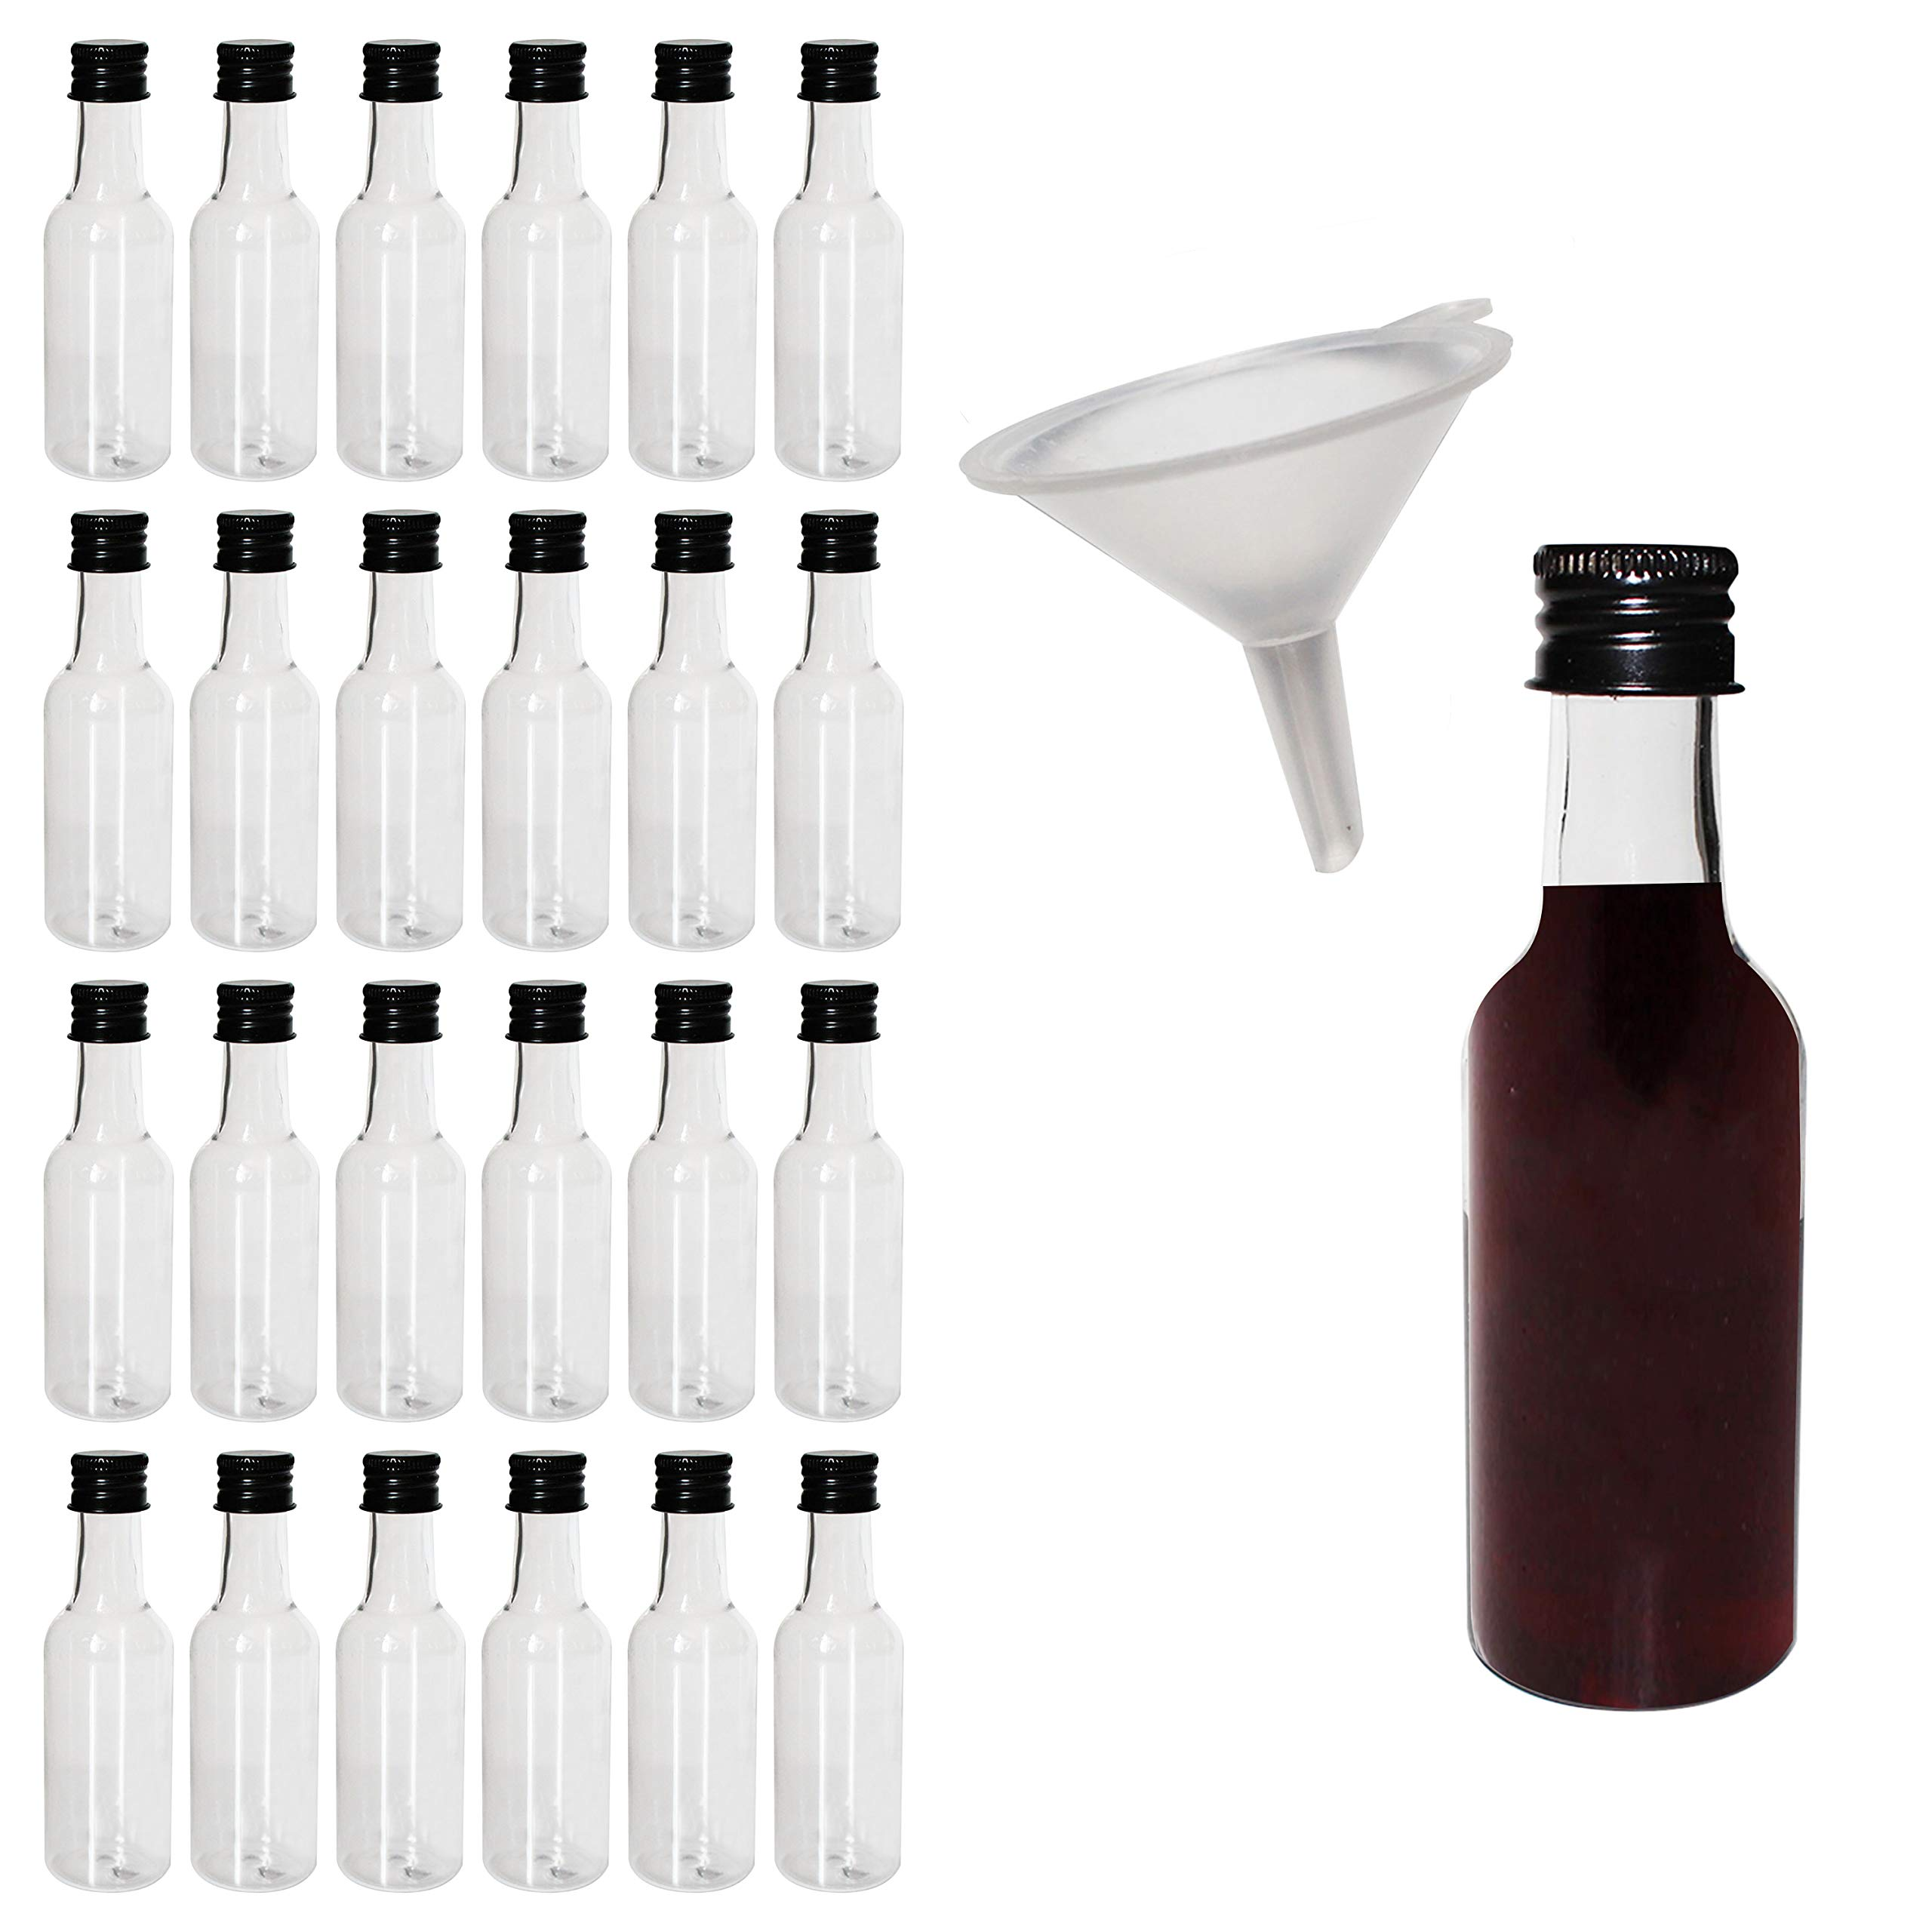 Mini Liquor Bottles (24 Pack) - 55ml Plastic Empty Liquor Bottles with Black Cap and Liquid Funnel for Pouring Liquid - Miniature Bottles for Weddings, Party Favors, Arts, Paints and Events by BELLE VOUS